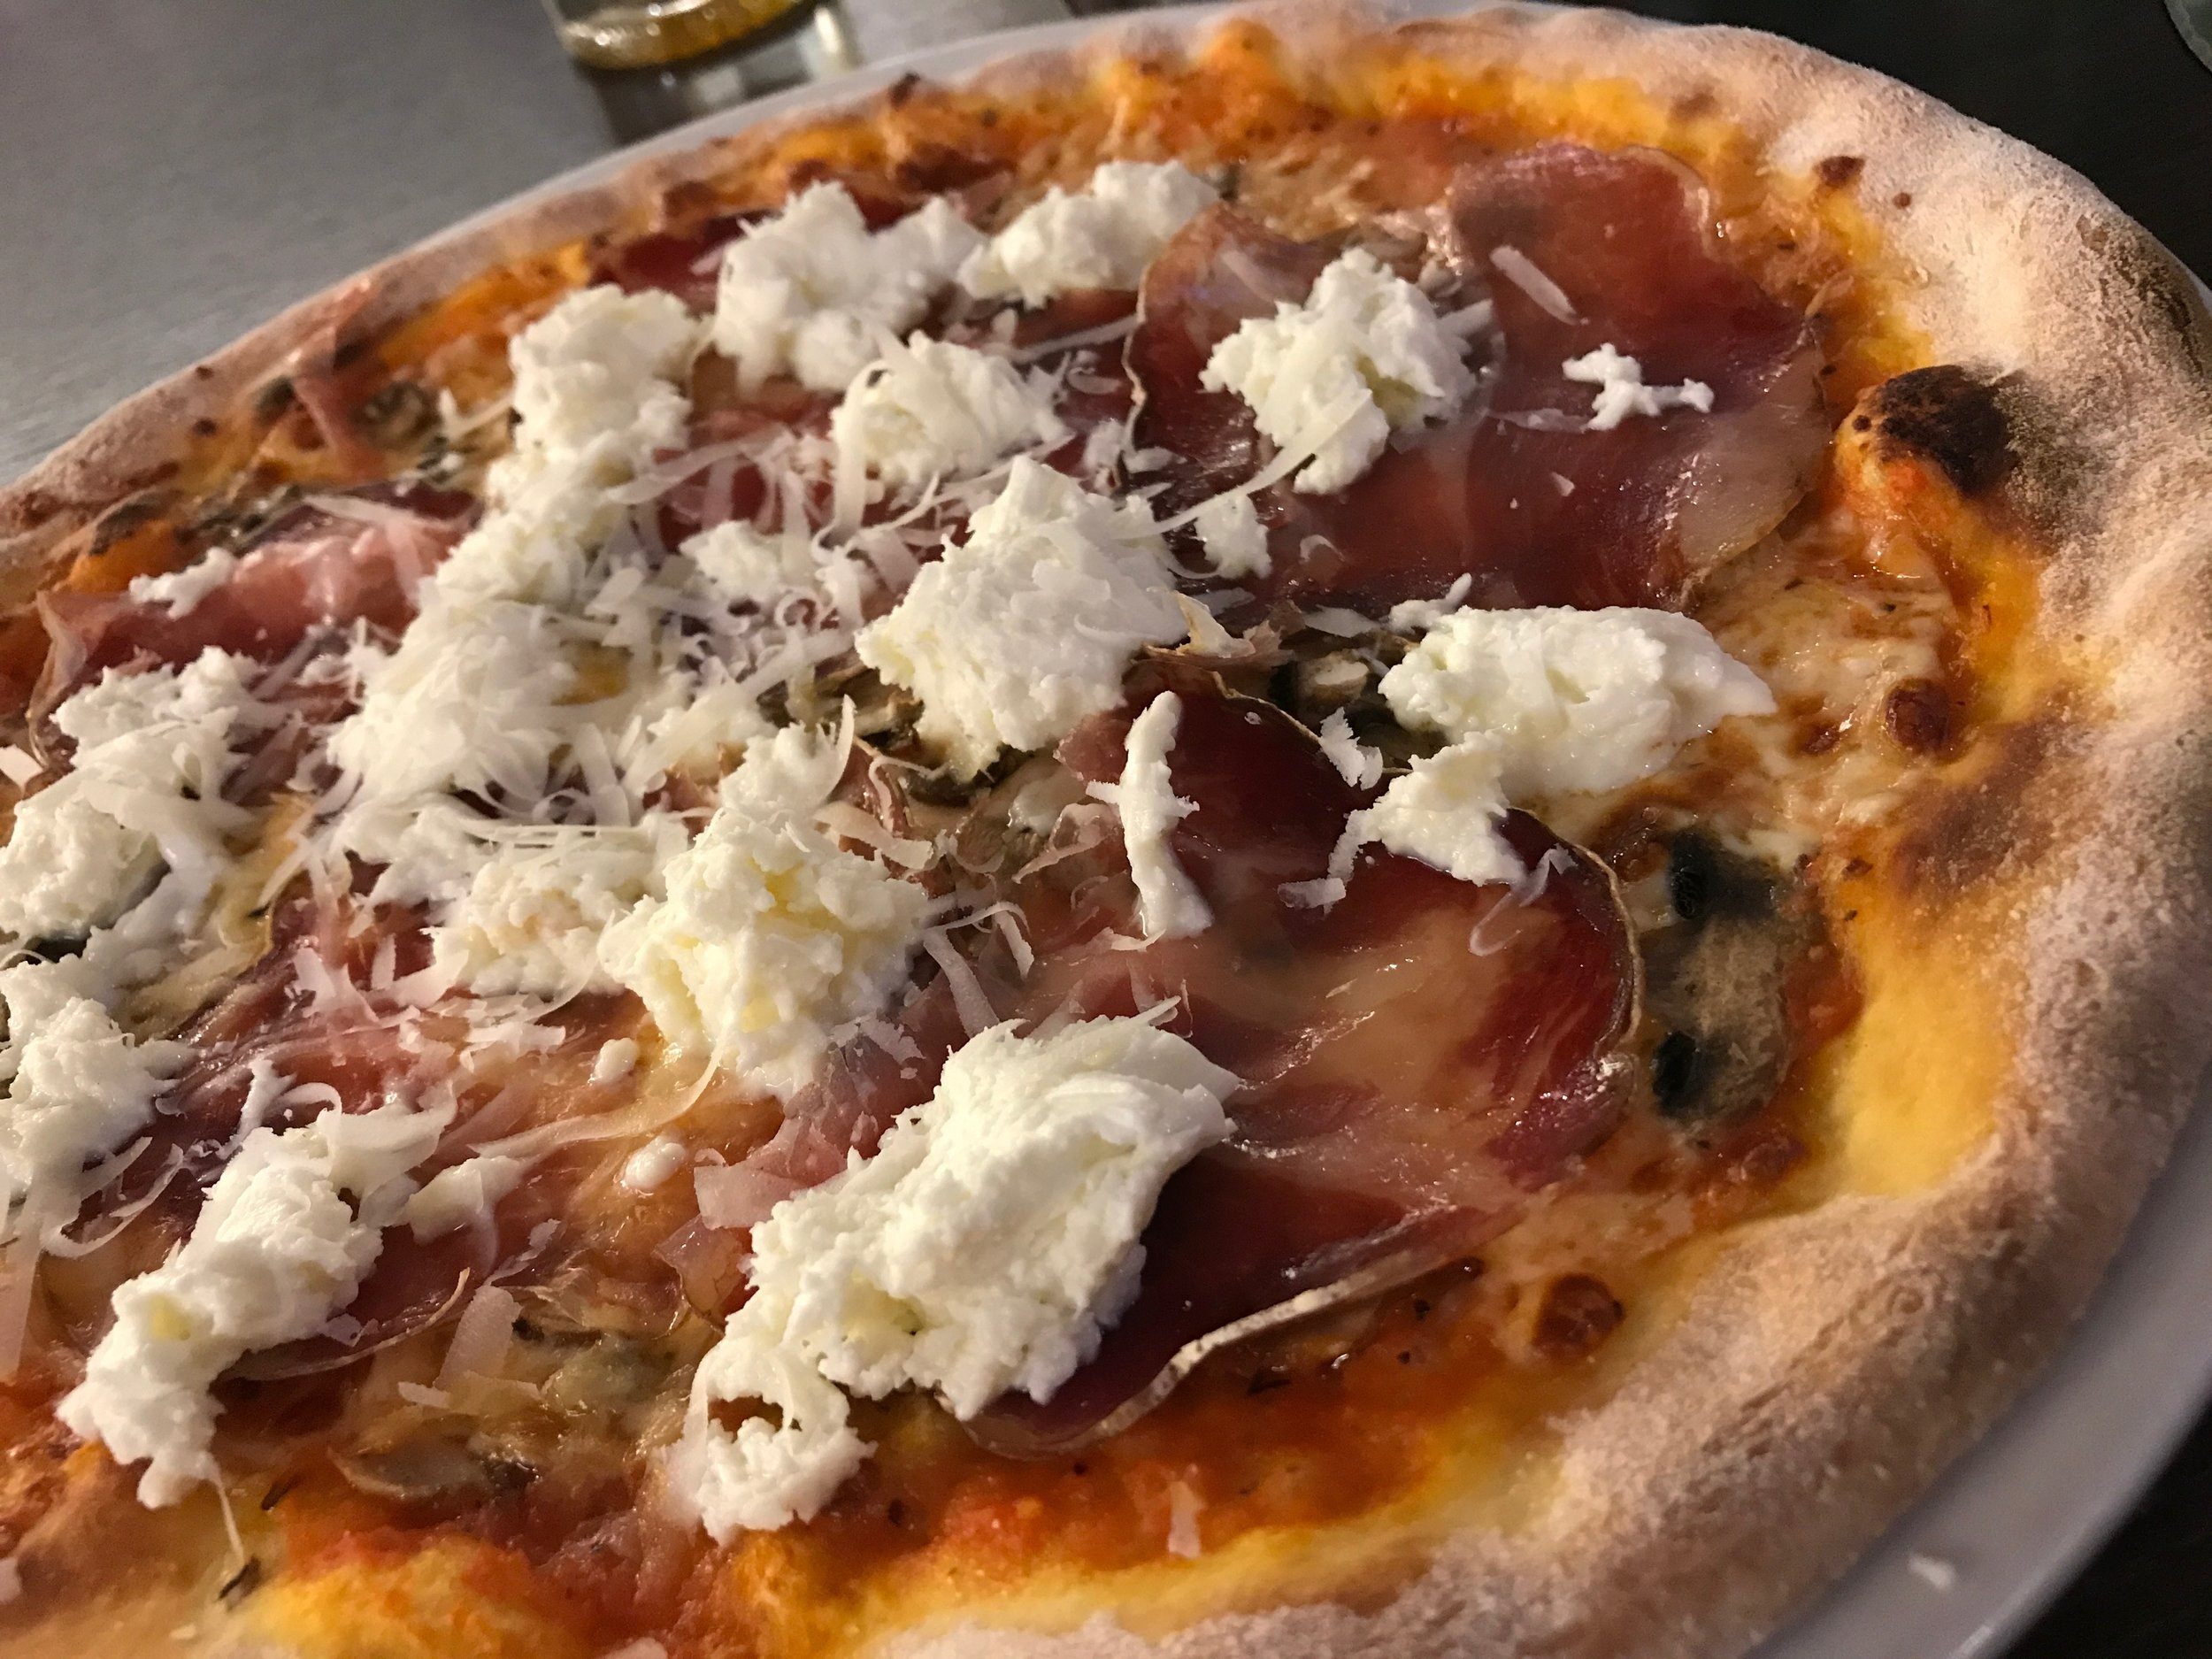 Yes, there IS great pizza in France - at Pizzeria Bufala in Beaune...